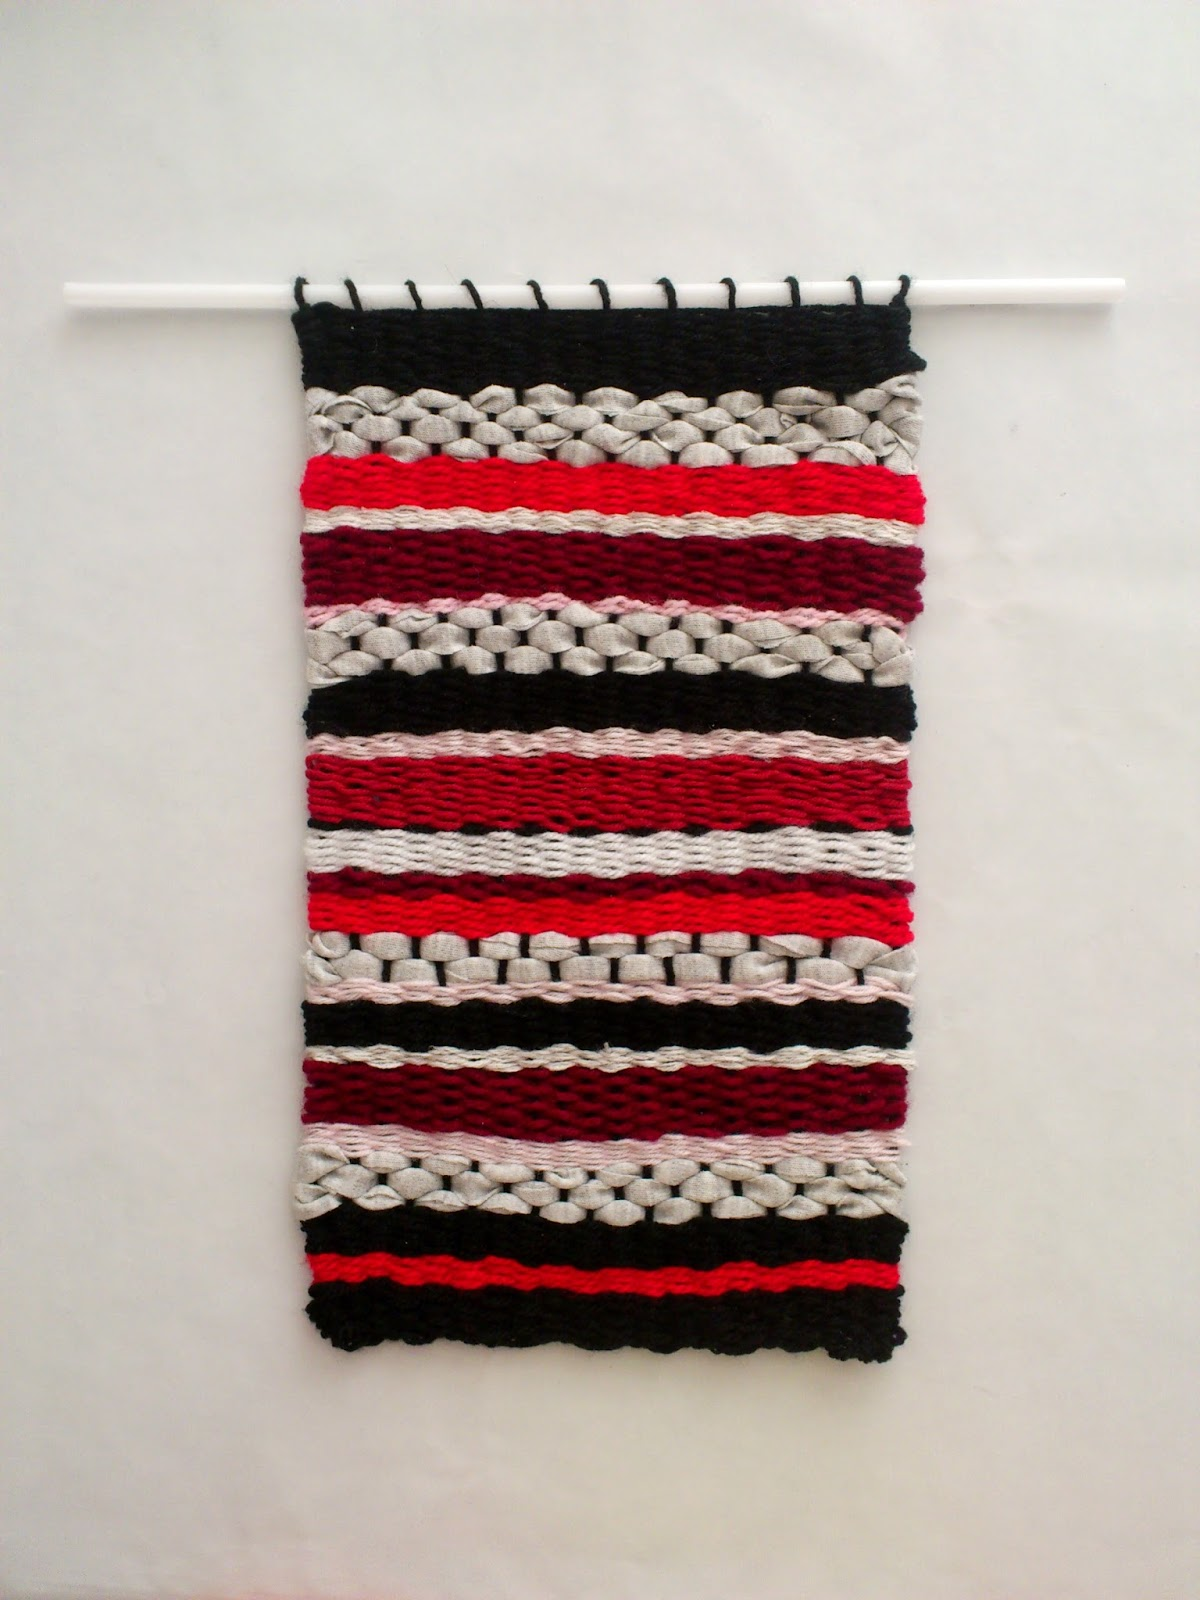 DIY Woven Yarn Wall Hanging